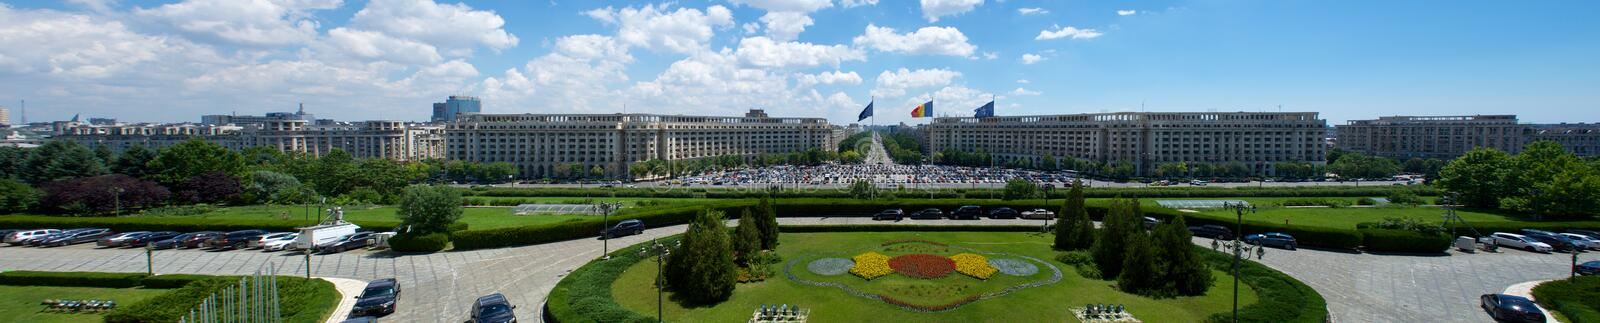 Ceausescu Palace view of the Parliament Bucharest Romania Europe royalty free stock photo